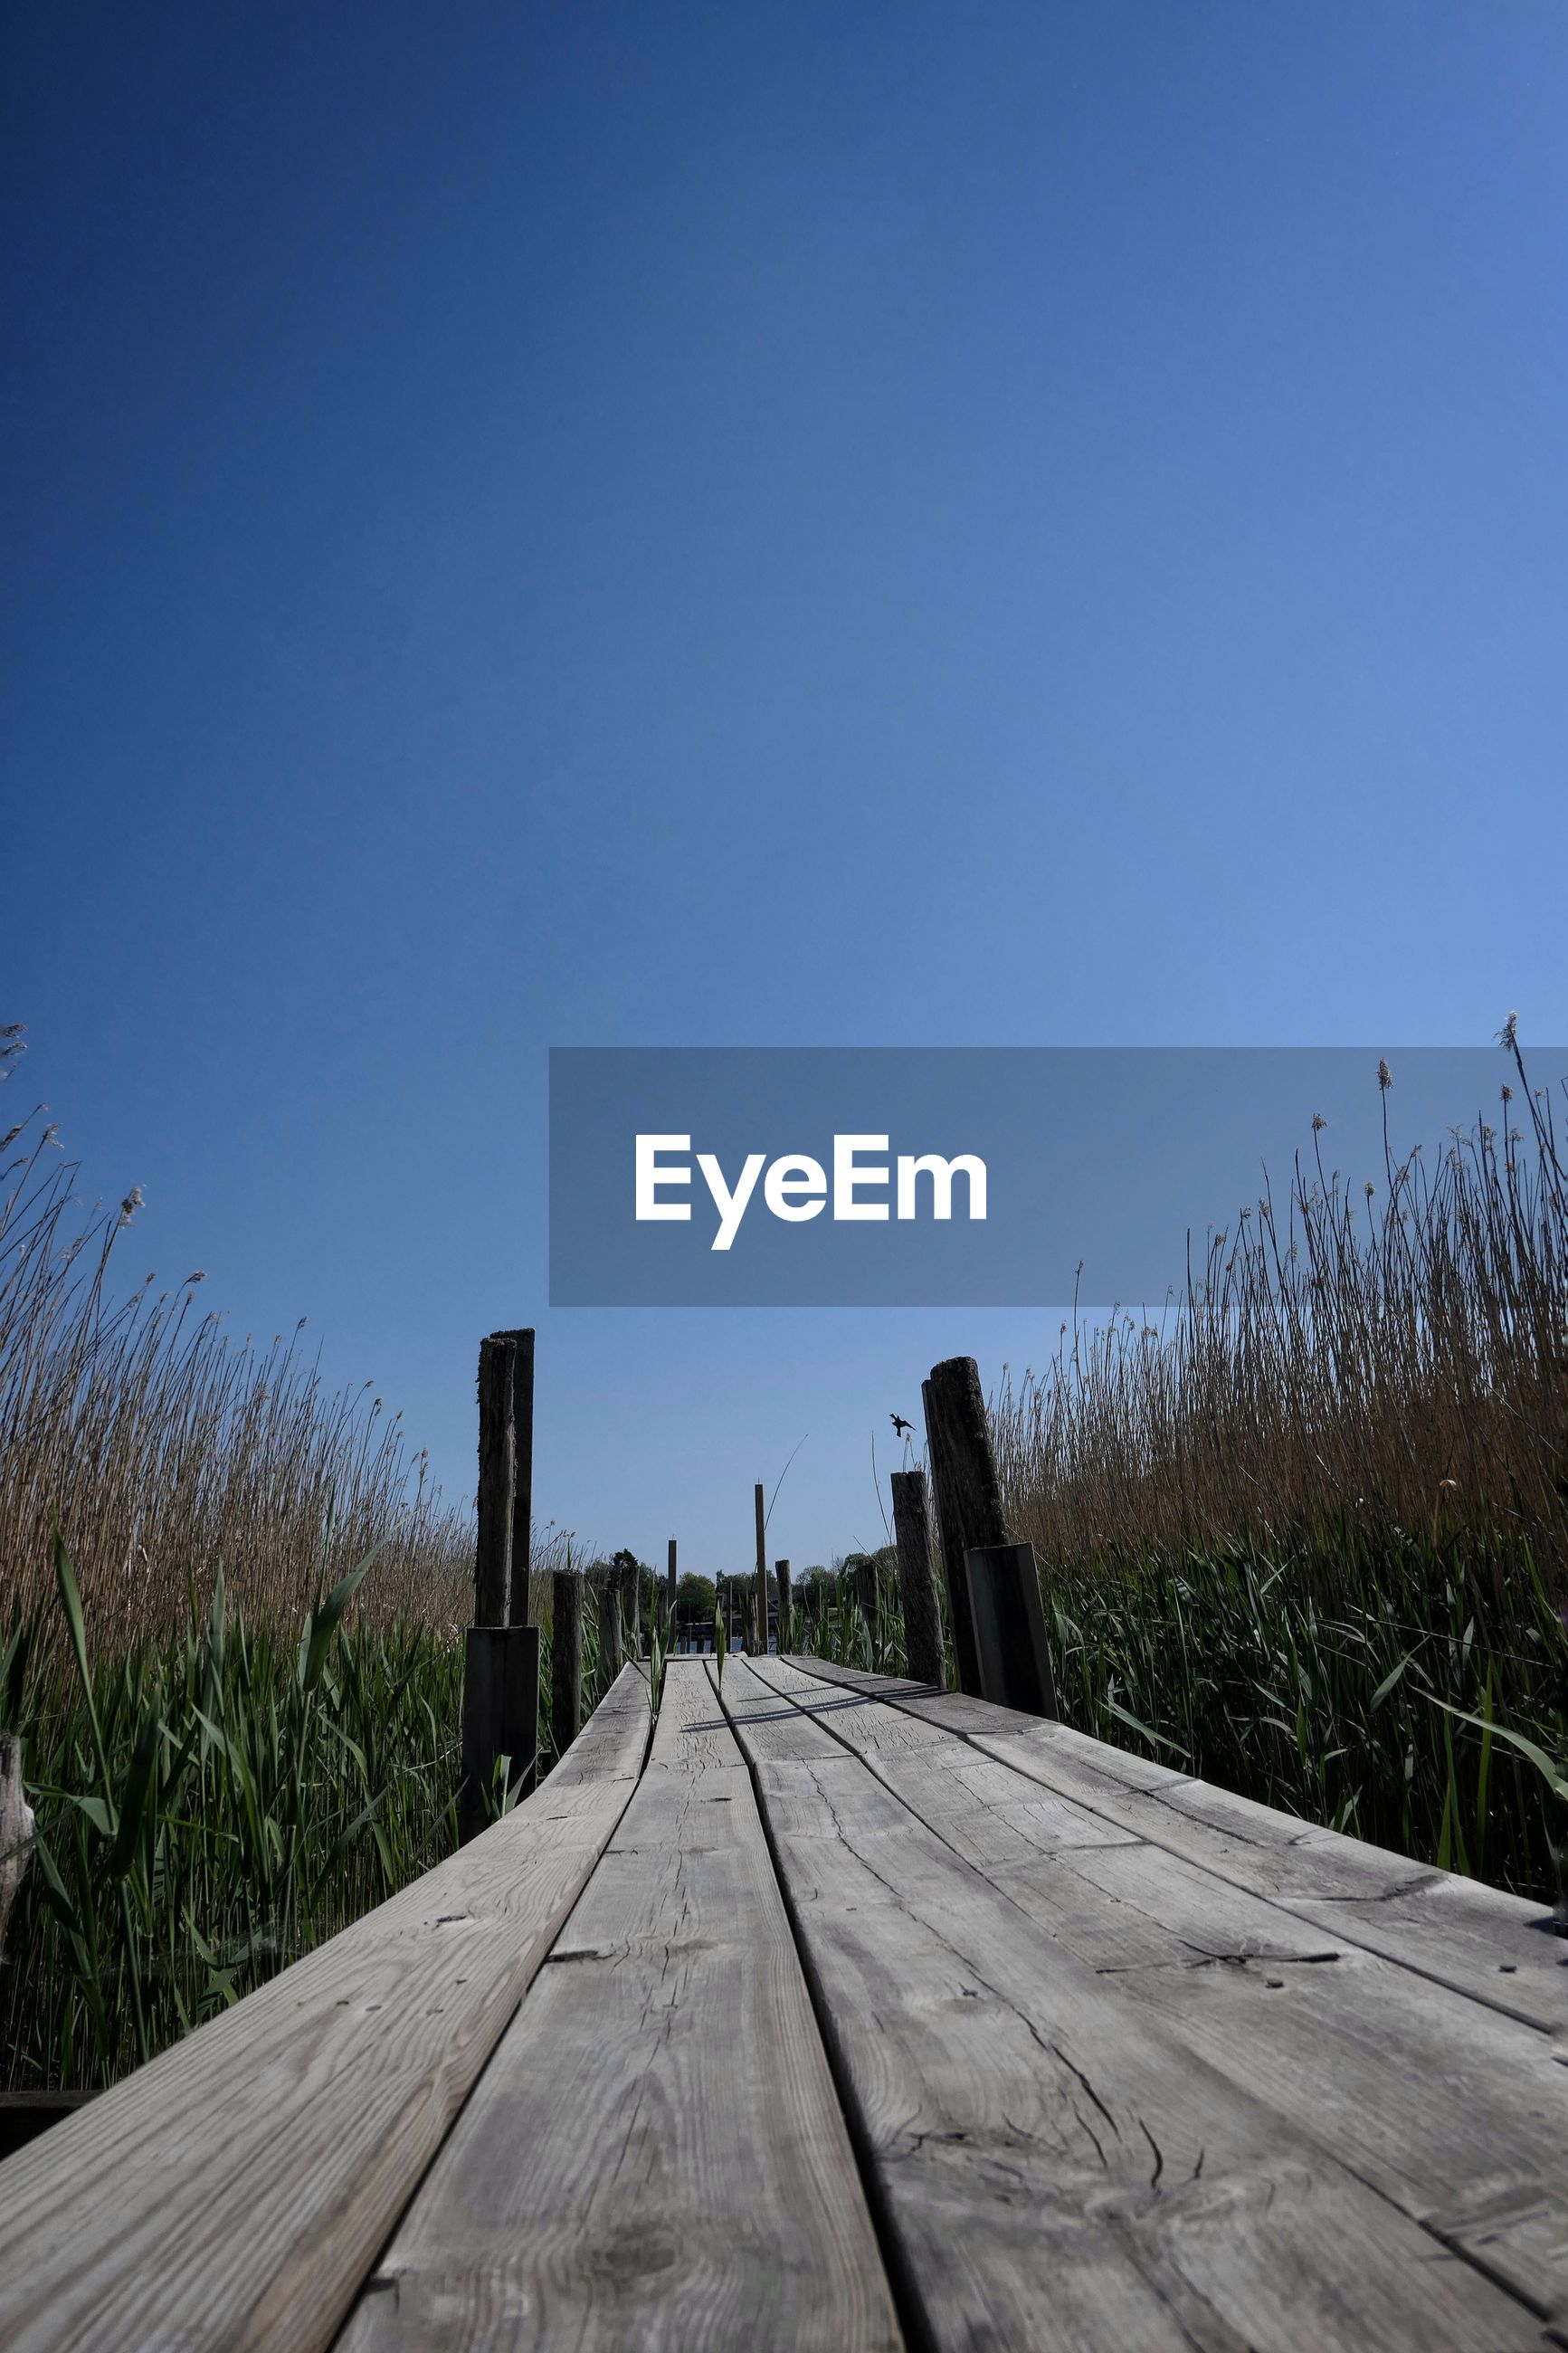 Surface level of boardwalk against clear blue sky